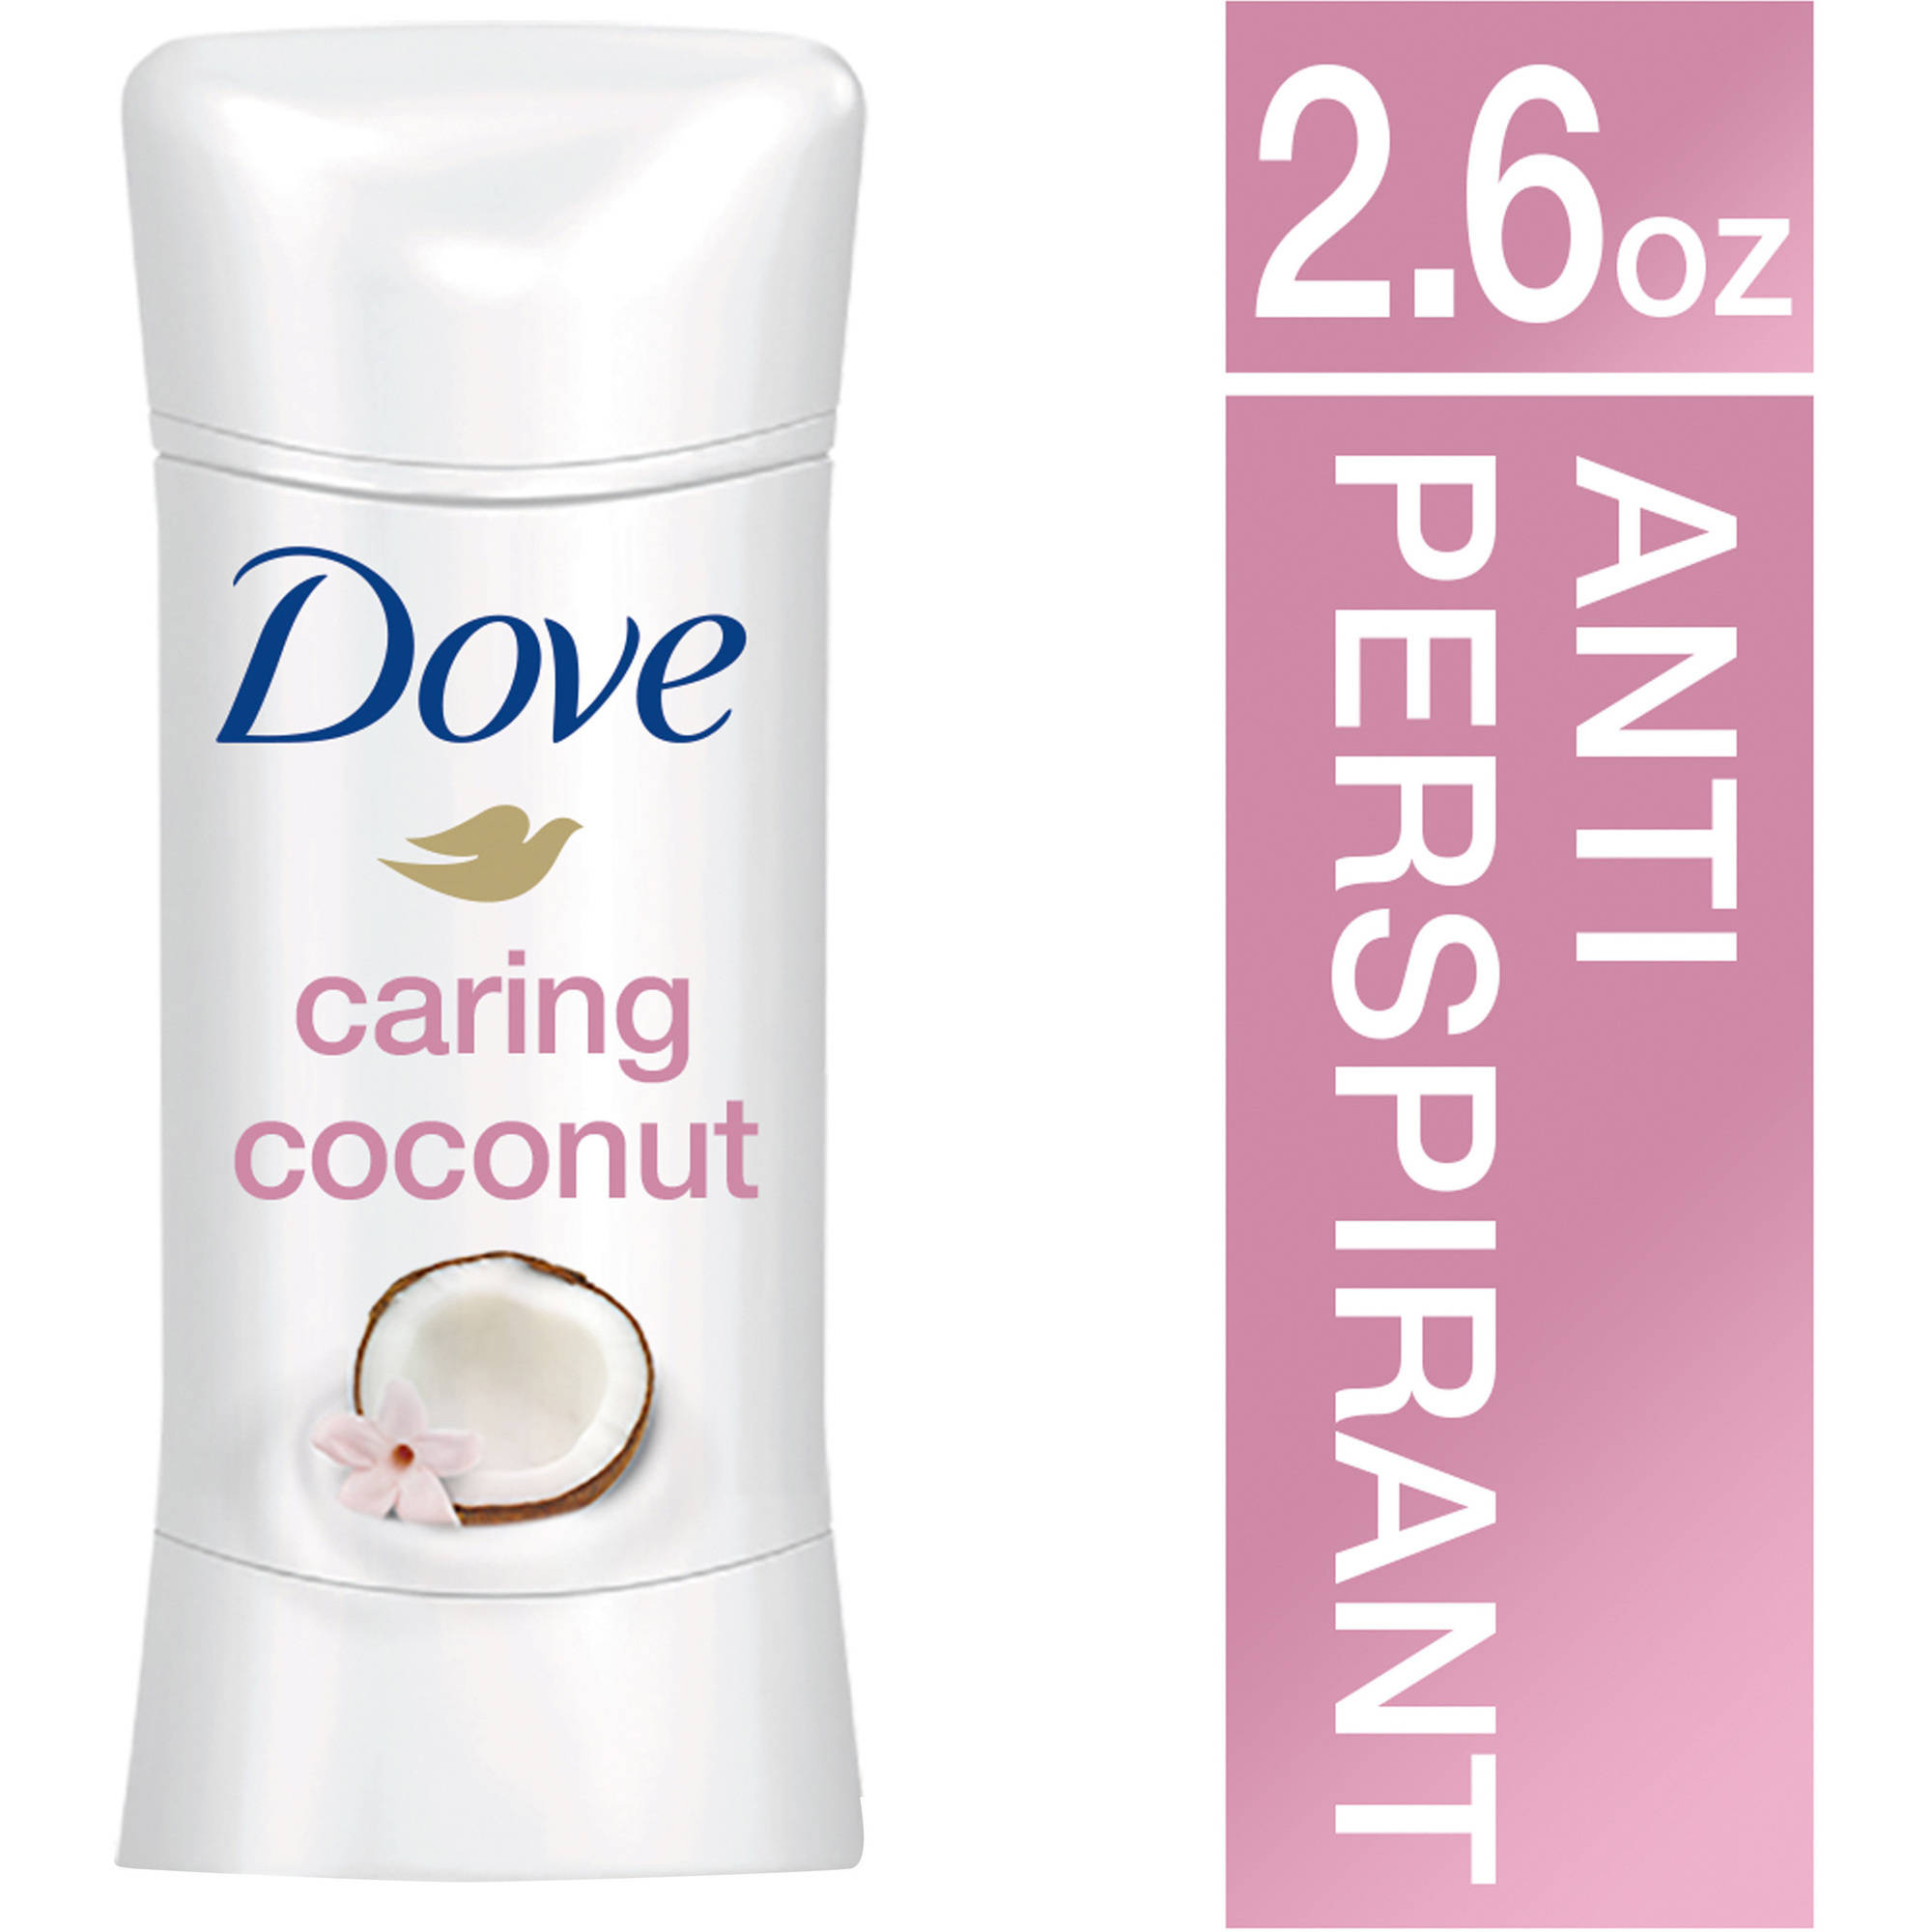 Dove Advanced Care Caring Coconut Antiperspirant Deodorant, 2.6 oz